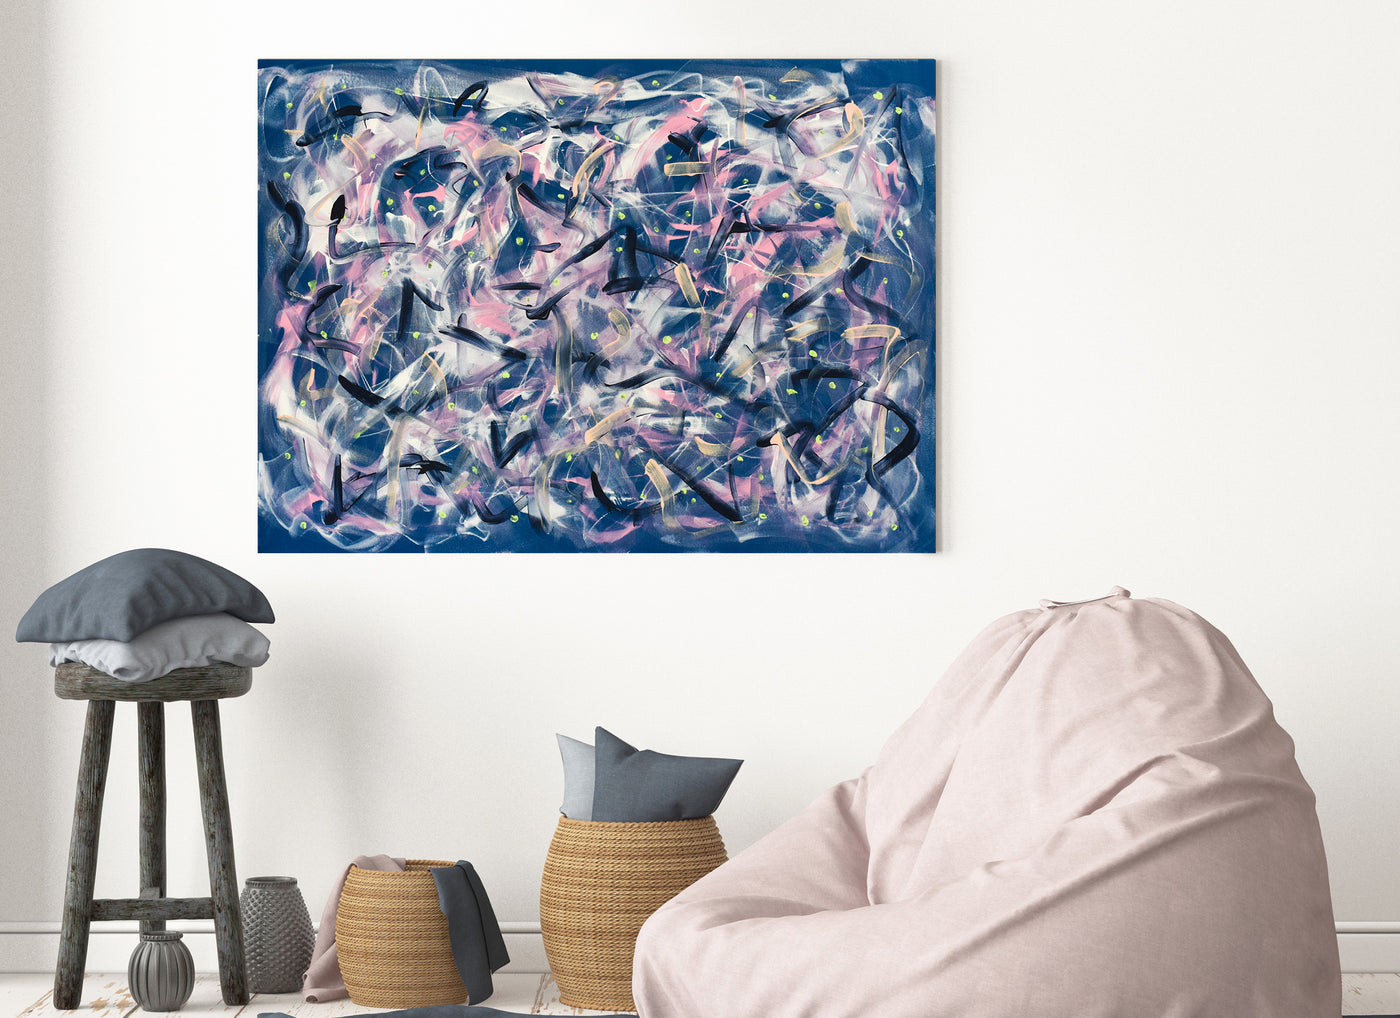 Blue abstract painting for sale